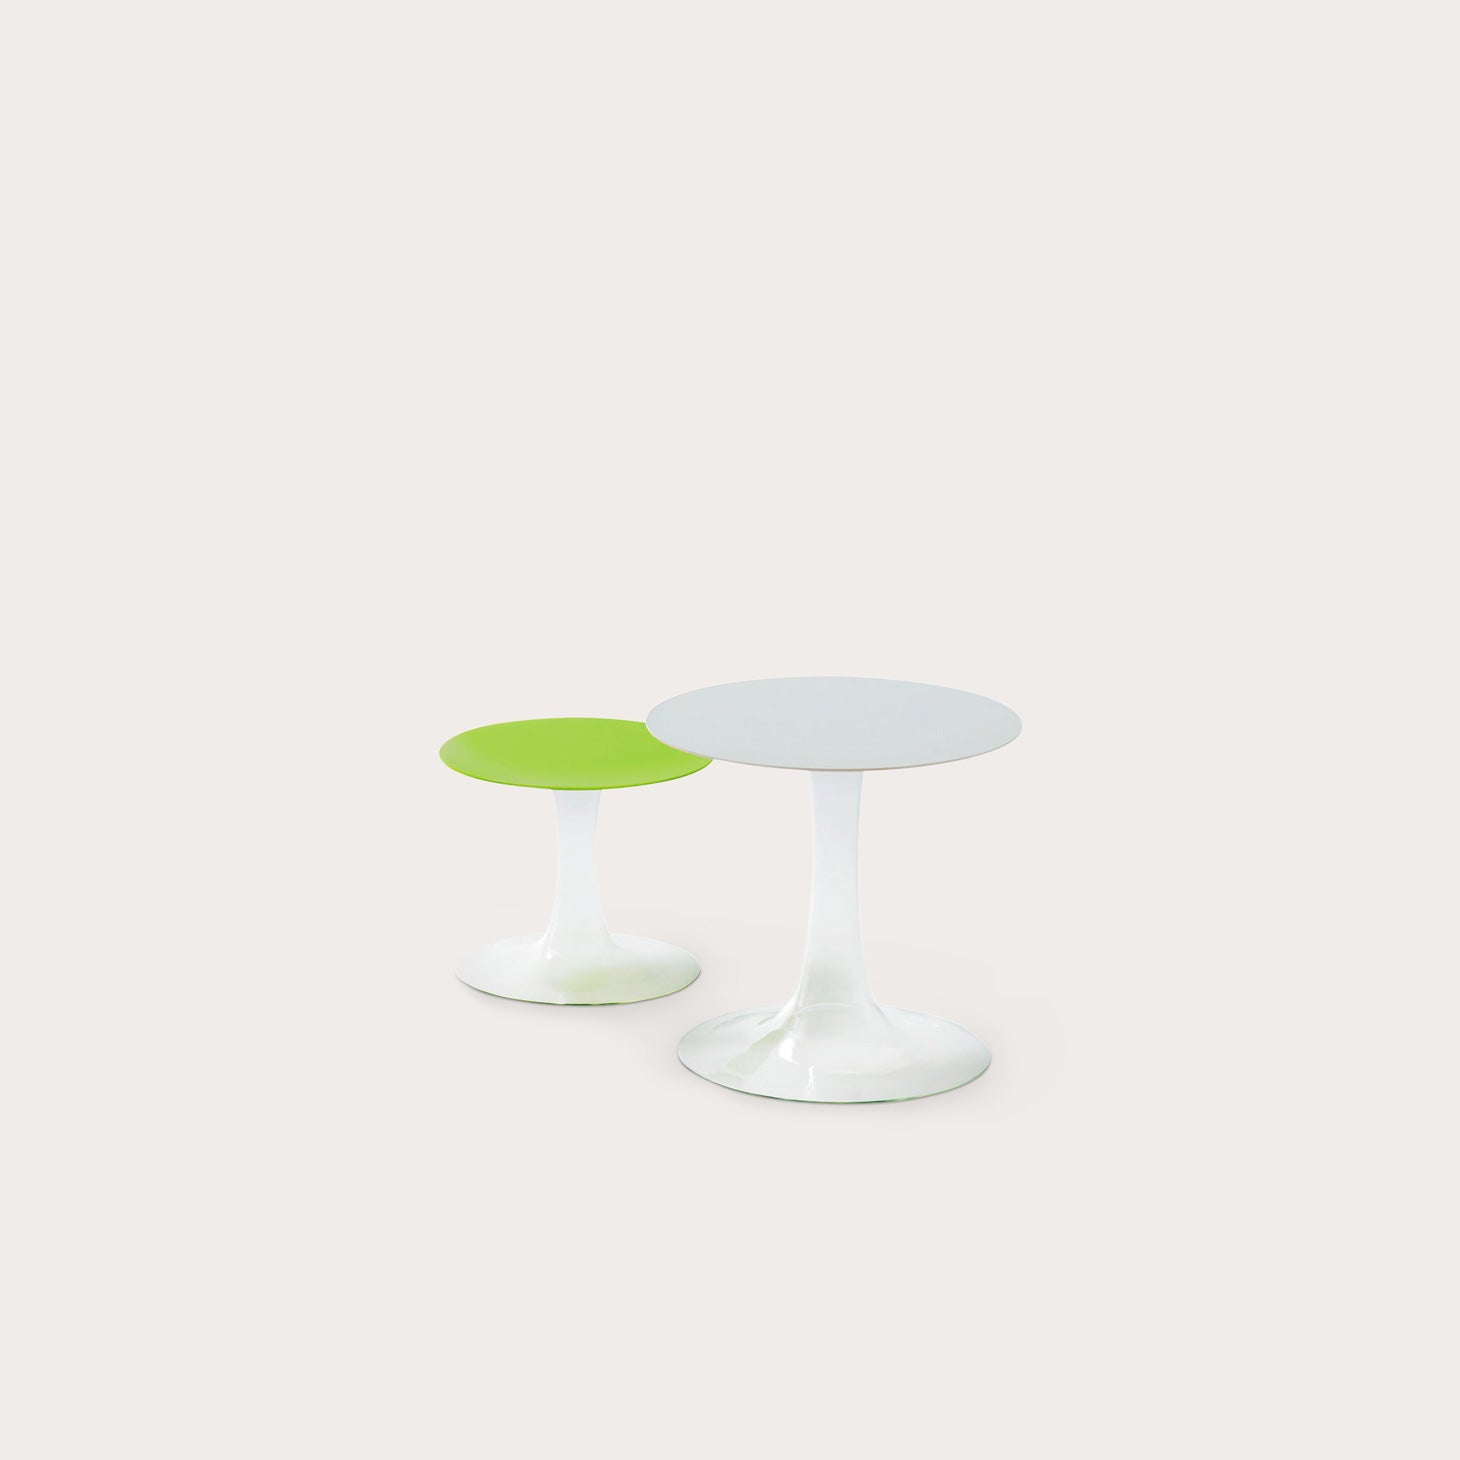 Funghetti Side Table Tables Piero Lissoni Designer Furniture Sku: 288-230-10055